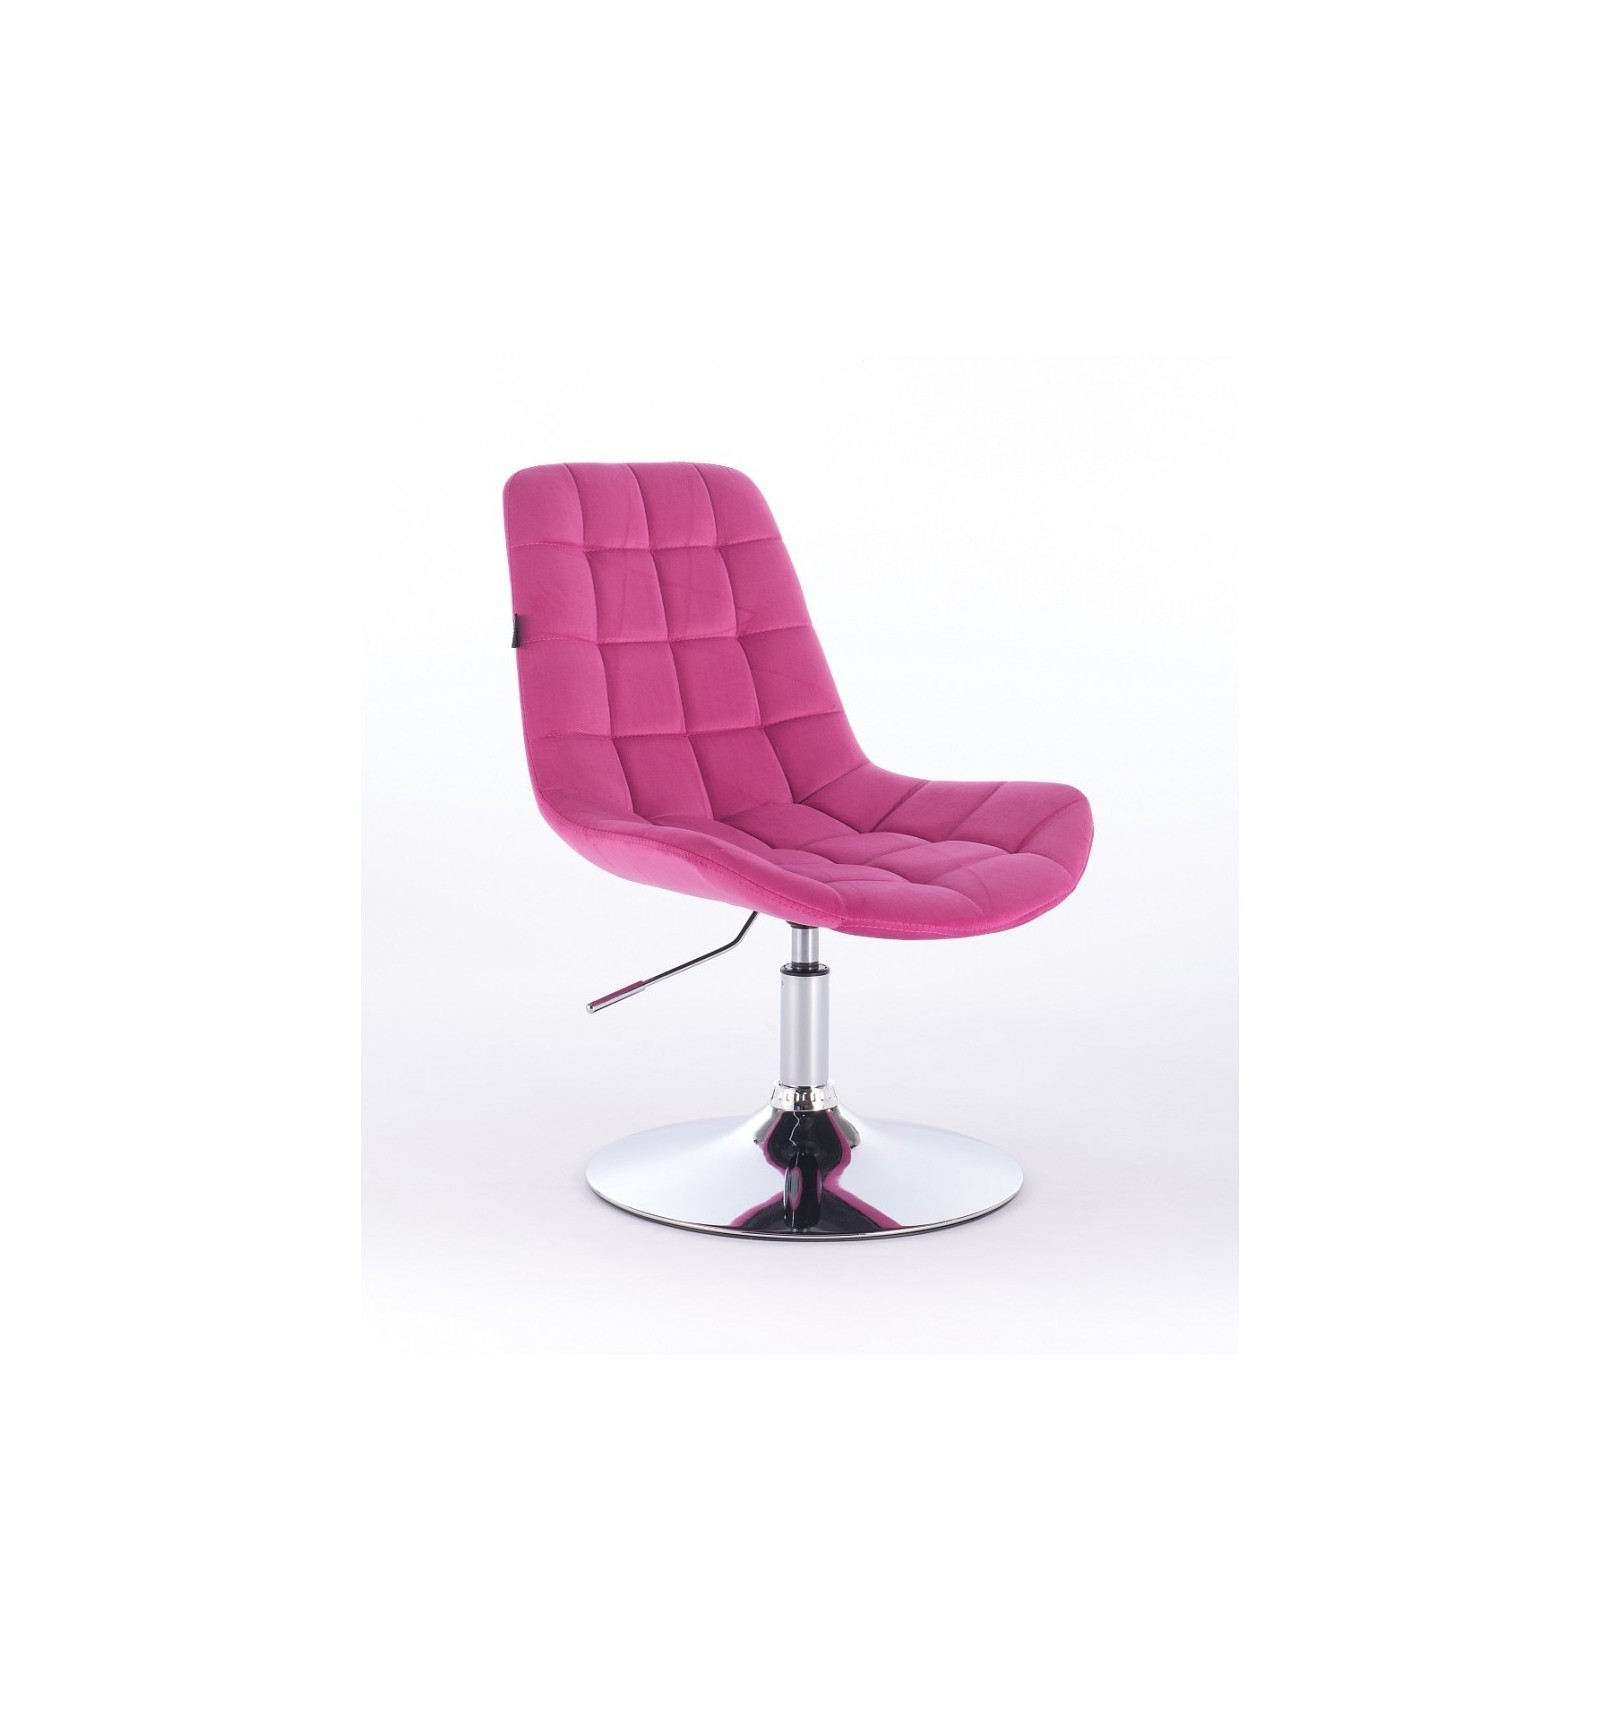 pink nail salon chairs wheelchair accessible taxi stylish hroove for beauty salons and hairdressers